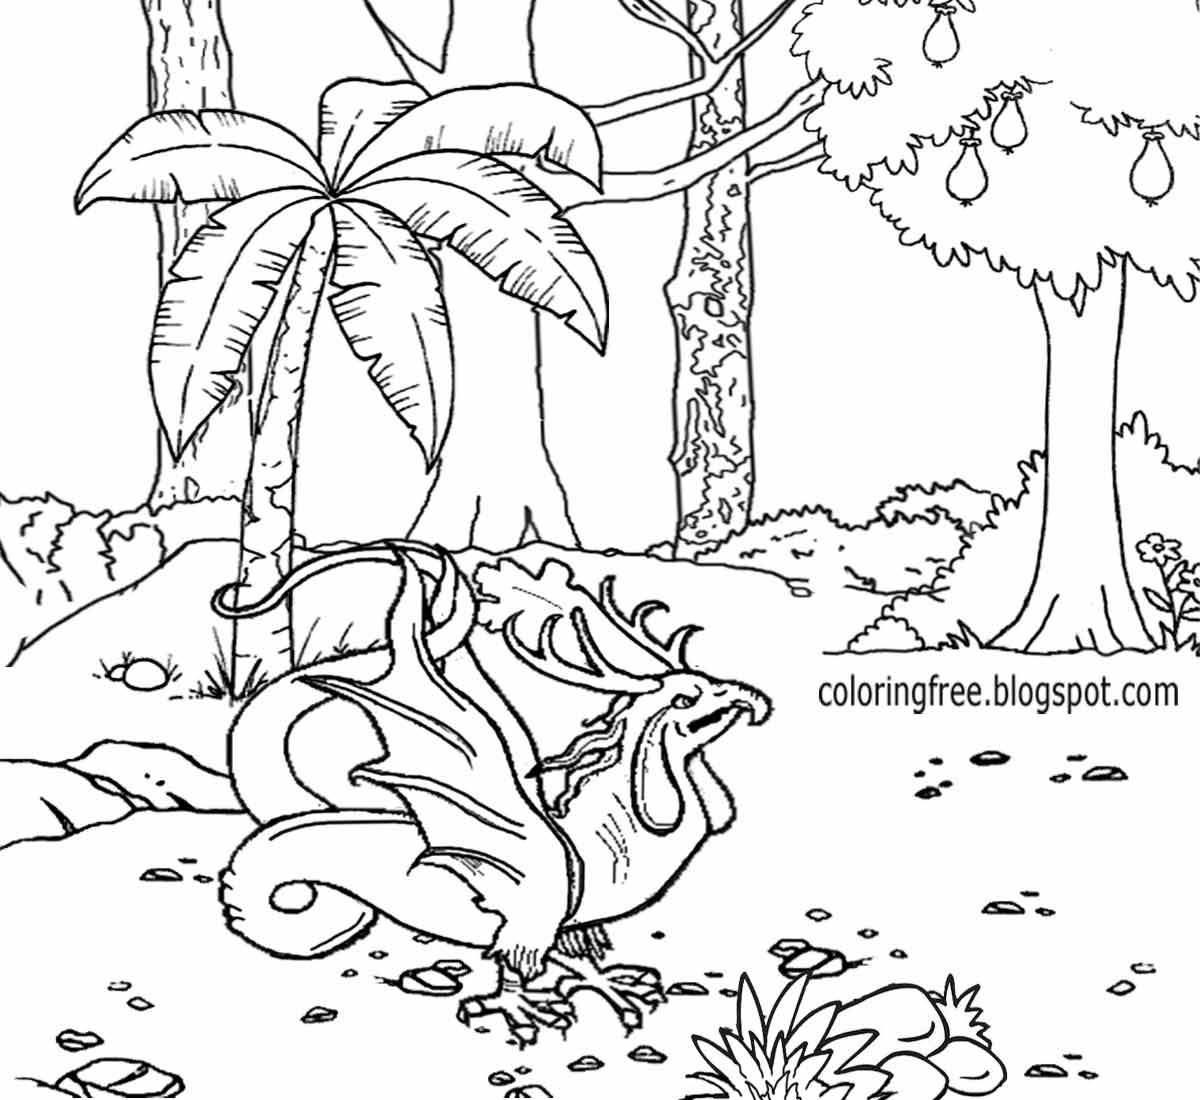 coloring pages forest magical forest coloring page drawing by lisa brando forest pages coloring